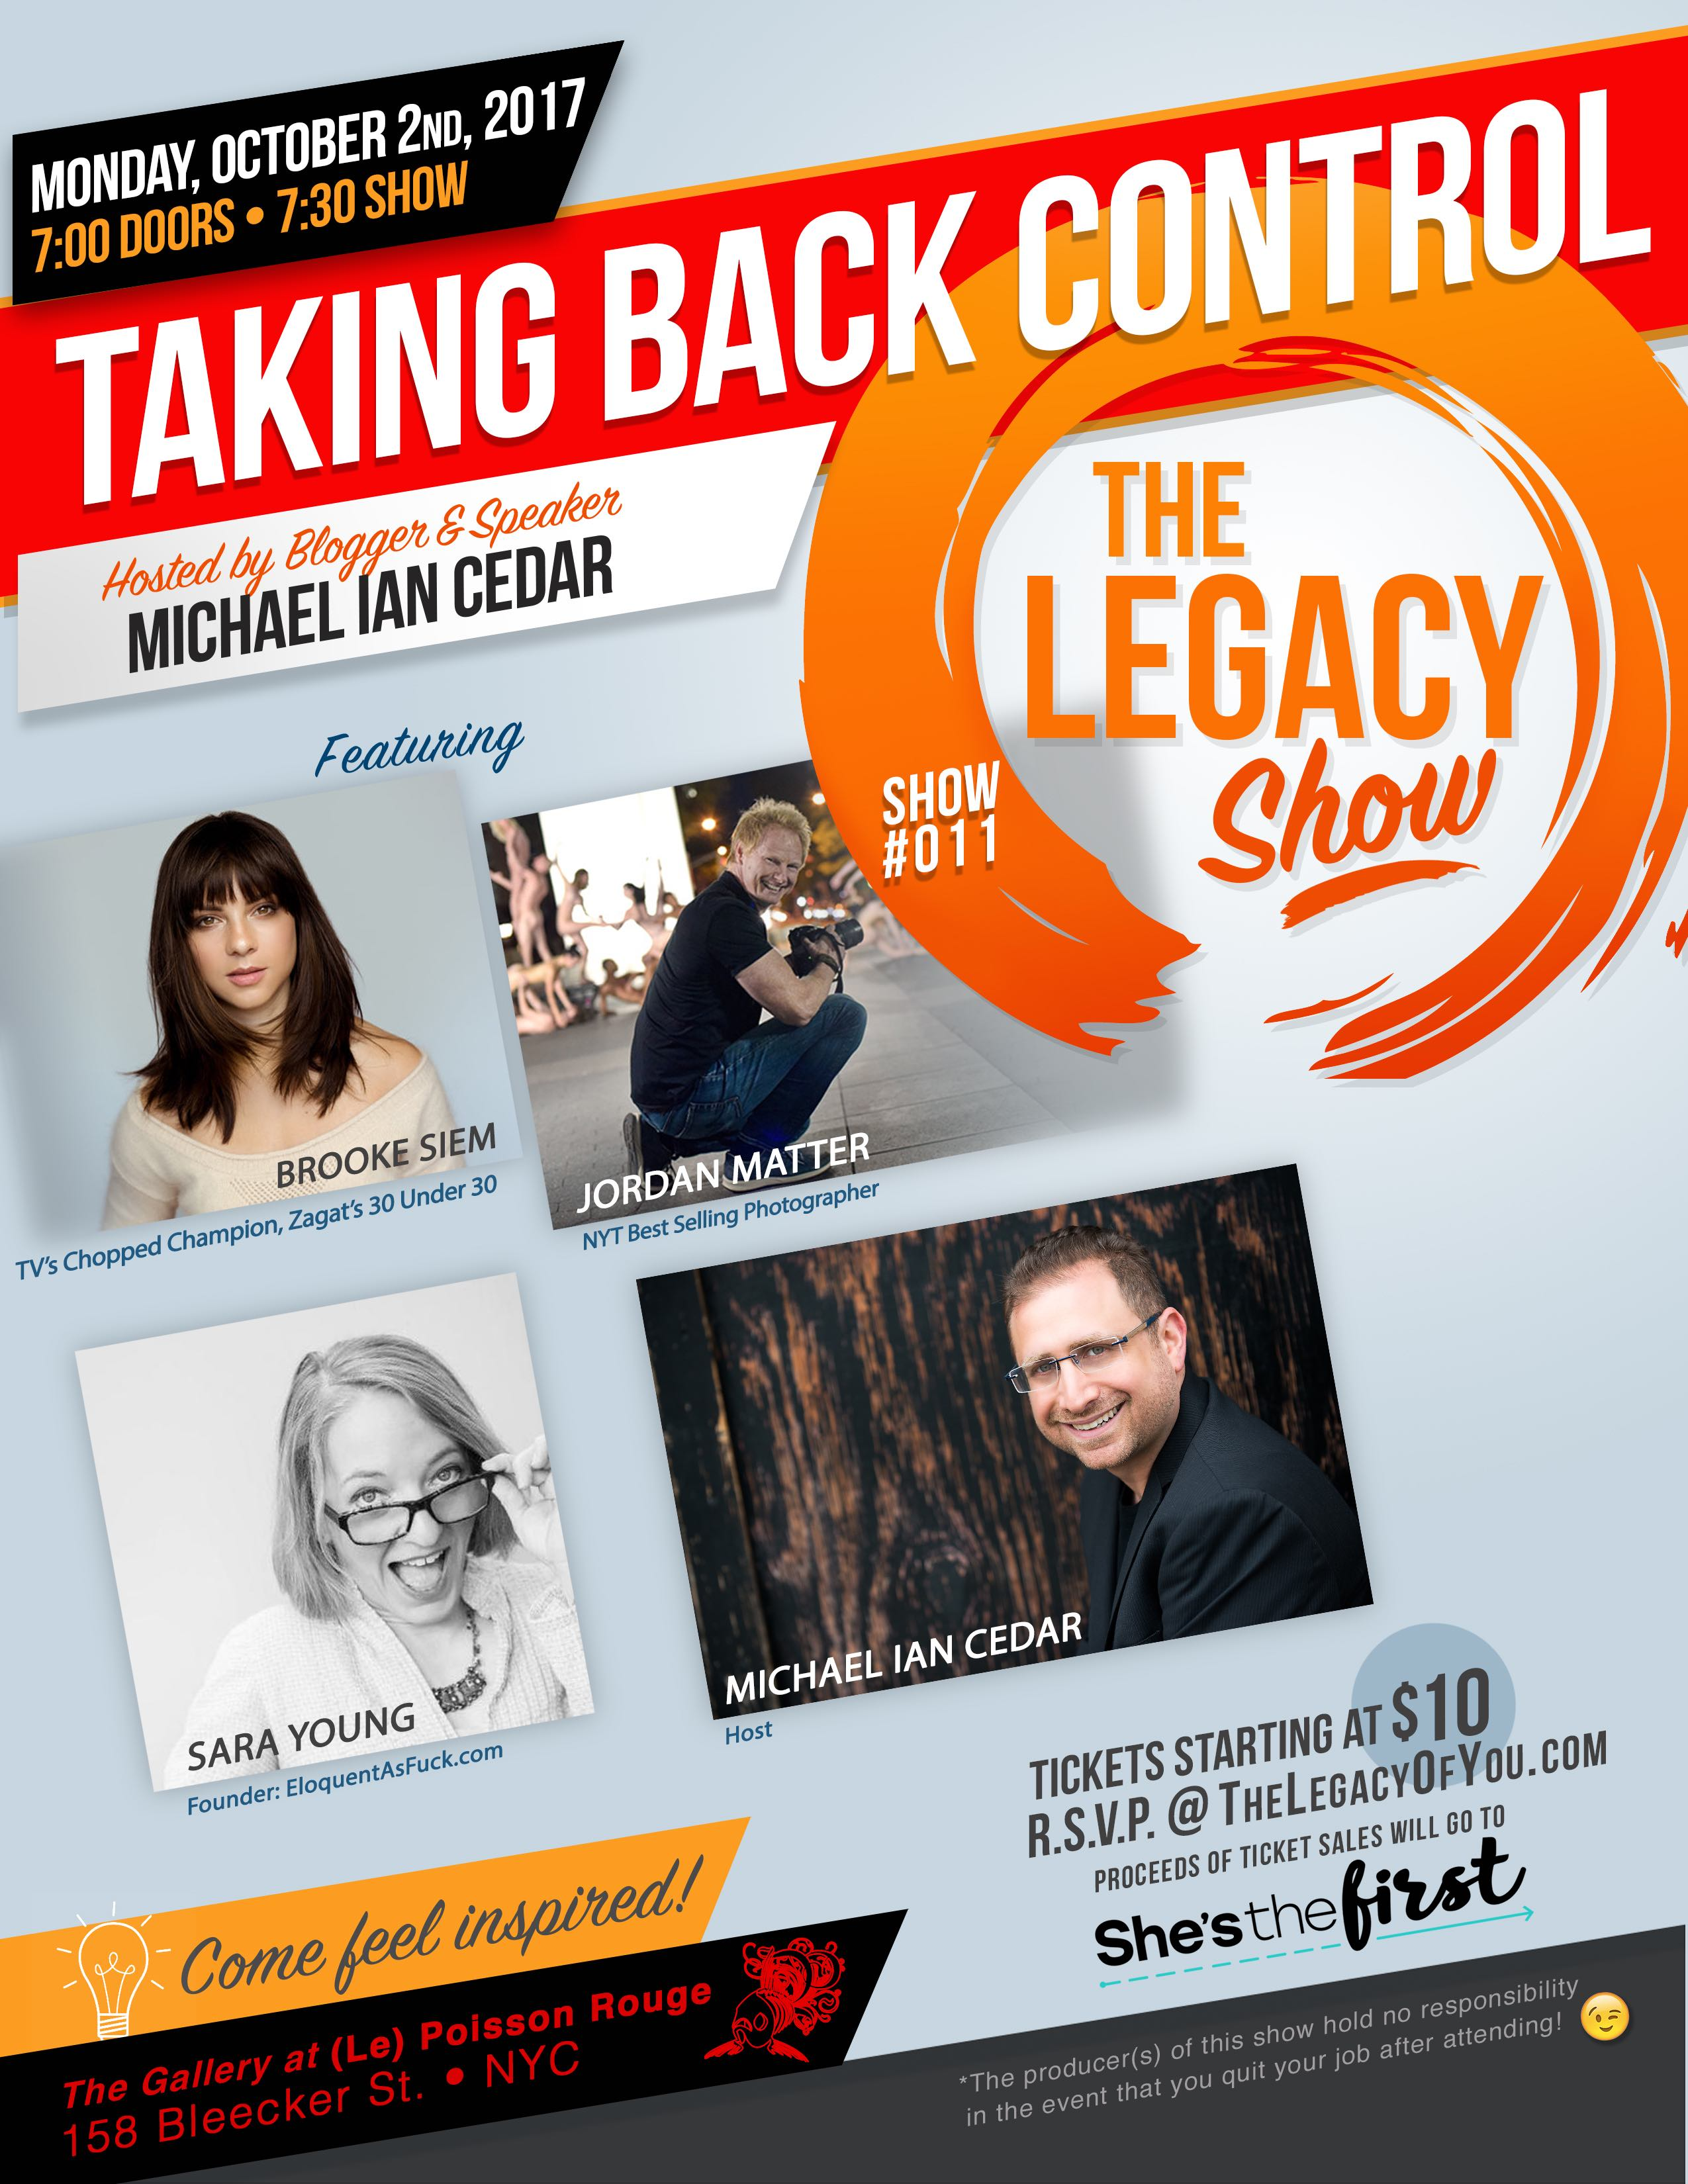 The Legacy Show #011 By Michael Ian Cedar